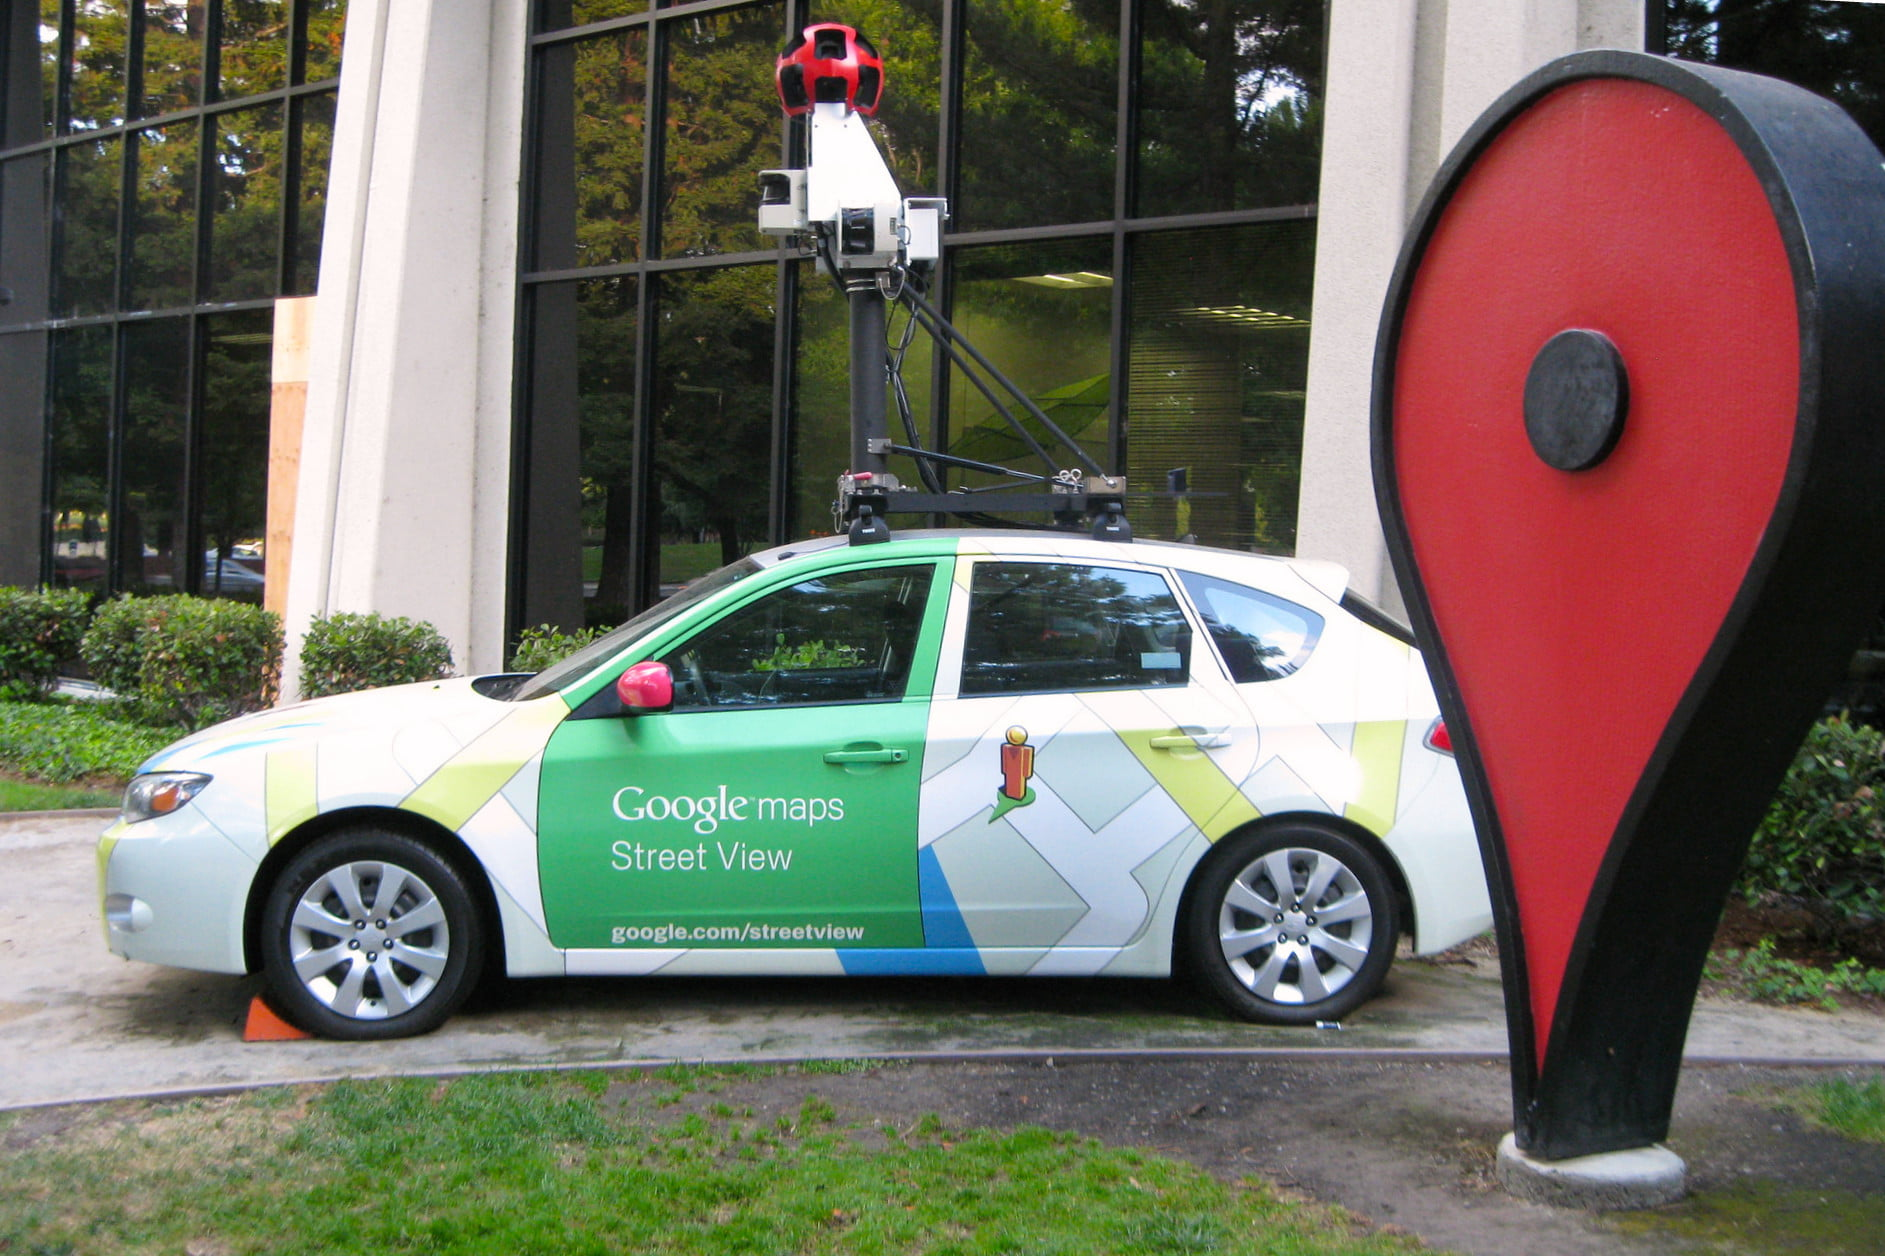 google street view in europe, aspen movie map, street view car, competition of google street view, google mapquest, city view from car, angry birds car, google search, google car that drives itself, microsoft car, camera car, google map us rivers, googlr maps car, google self-driving car, here maps car, google street view privacy concerns, google bruxelles map, google street view in oceania, google street view in latin america, google street view in asia, google earth, google vehicle, mapquest maps car, bing maps car, google street view in africa, google art project, coolest car, web mapping, google map person, google street view, google car crash, google street view in the united states, on google map car